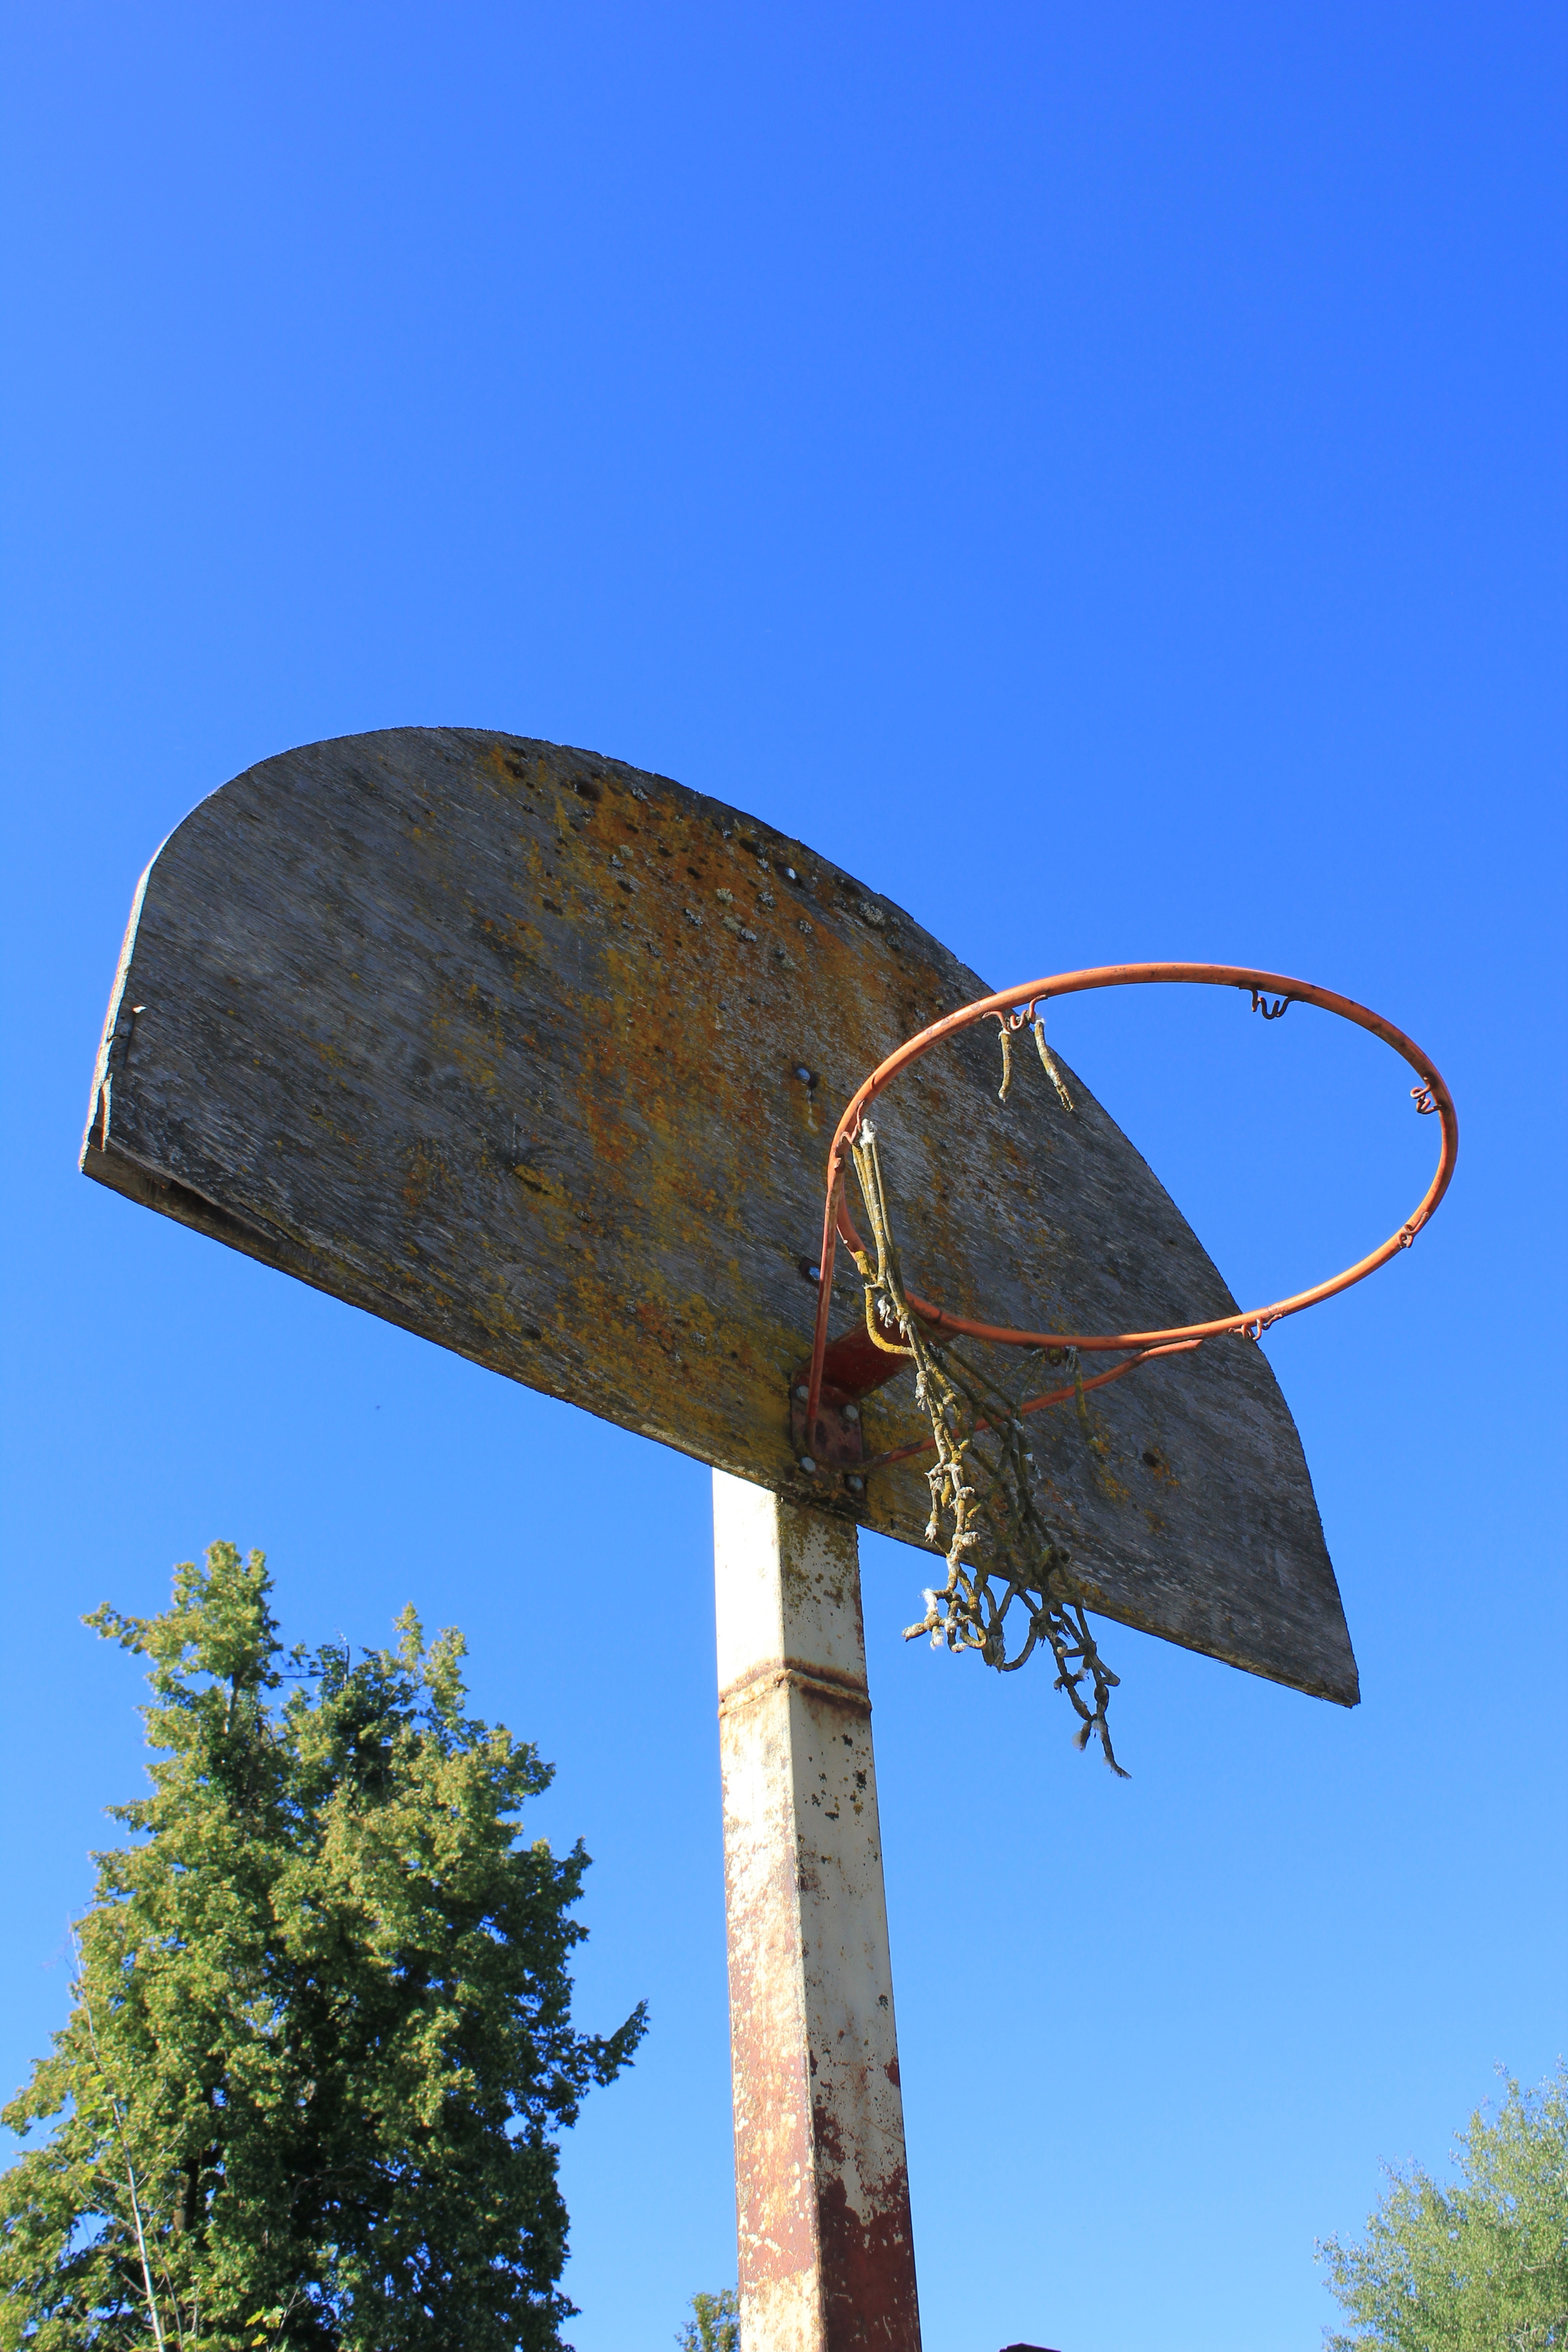 A subtle reminder that I will soon begin work as the second assistant coach of my daughter's first basketball team. Or just an awesome old hoop seen this past summer's end in southern Washington State.